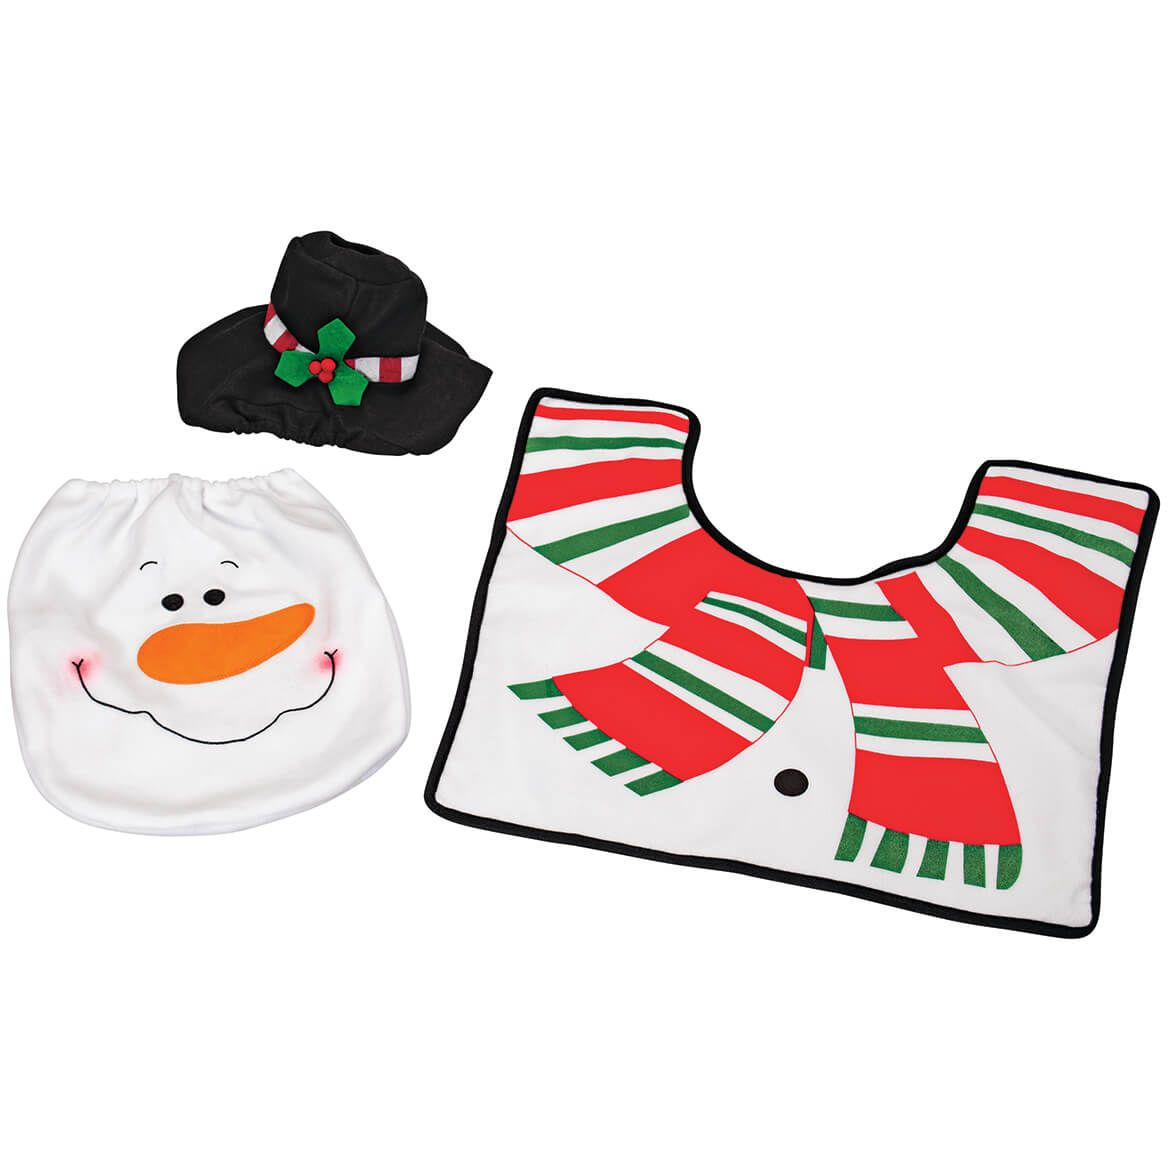 Snowman Toilet Cover and Rug, Set of 3-372336